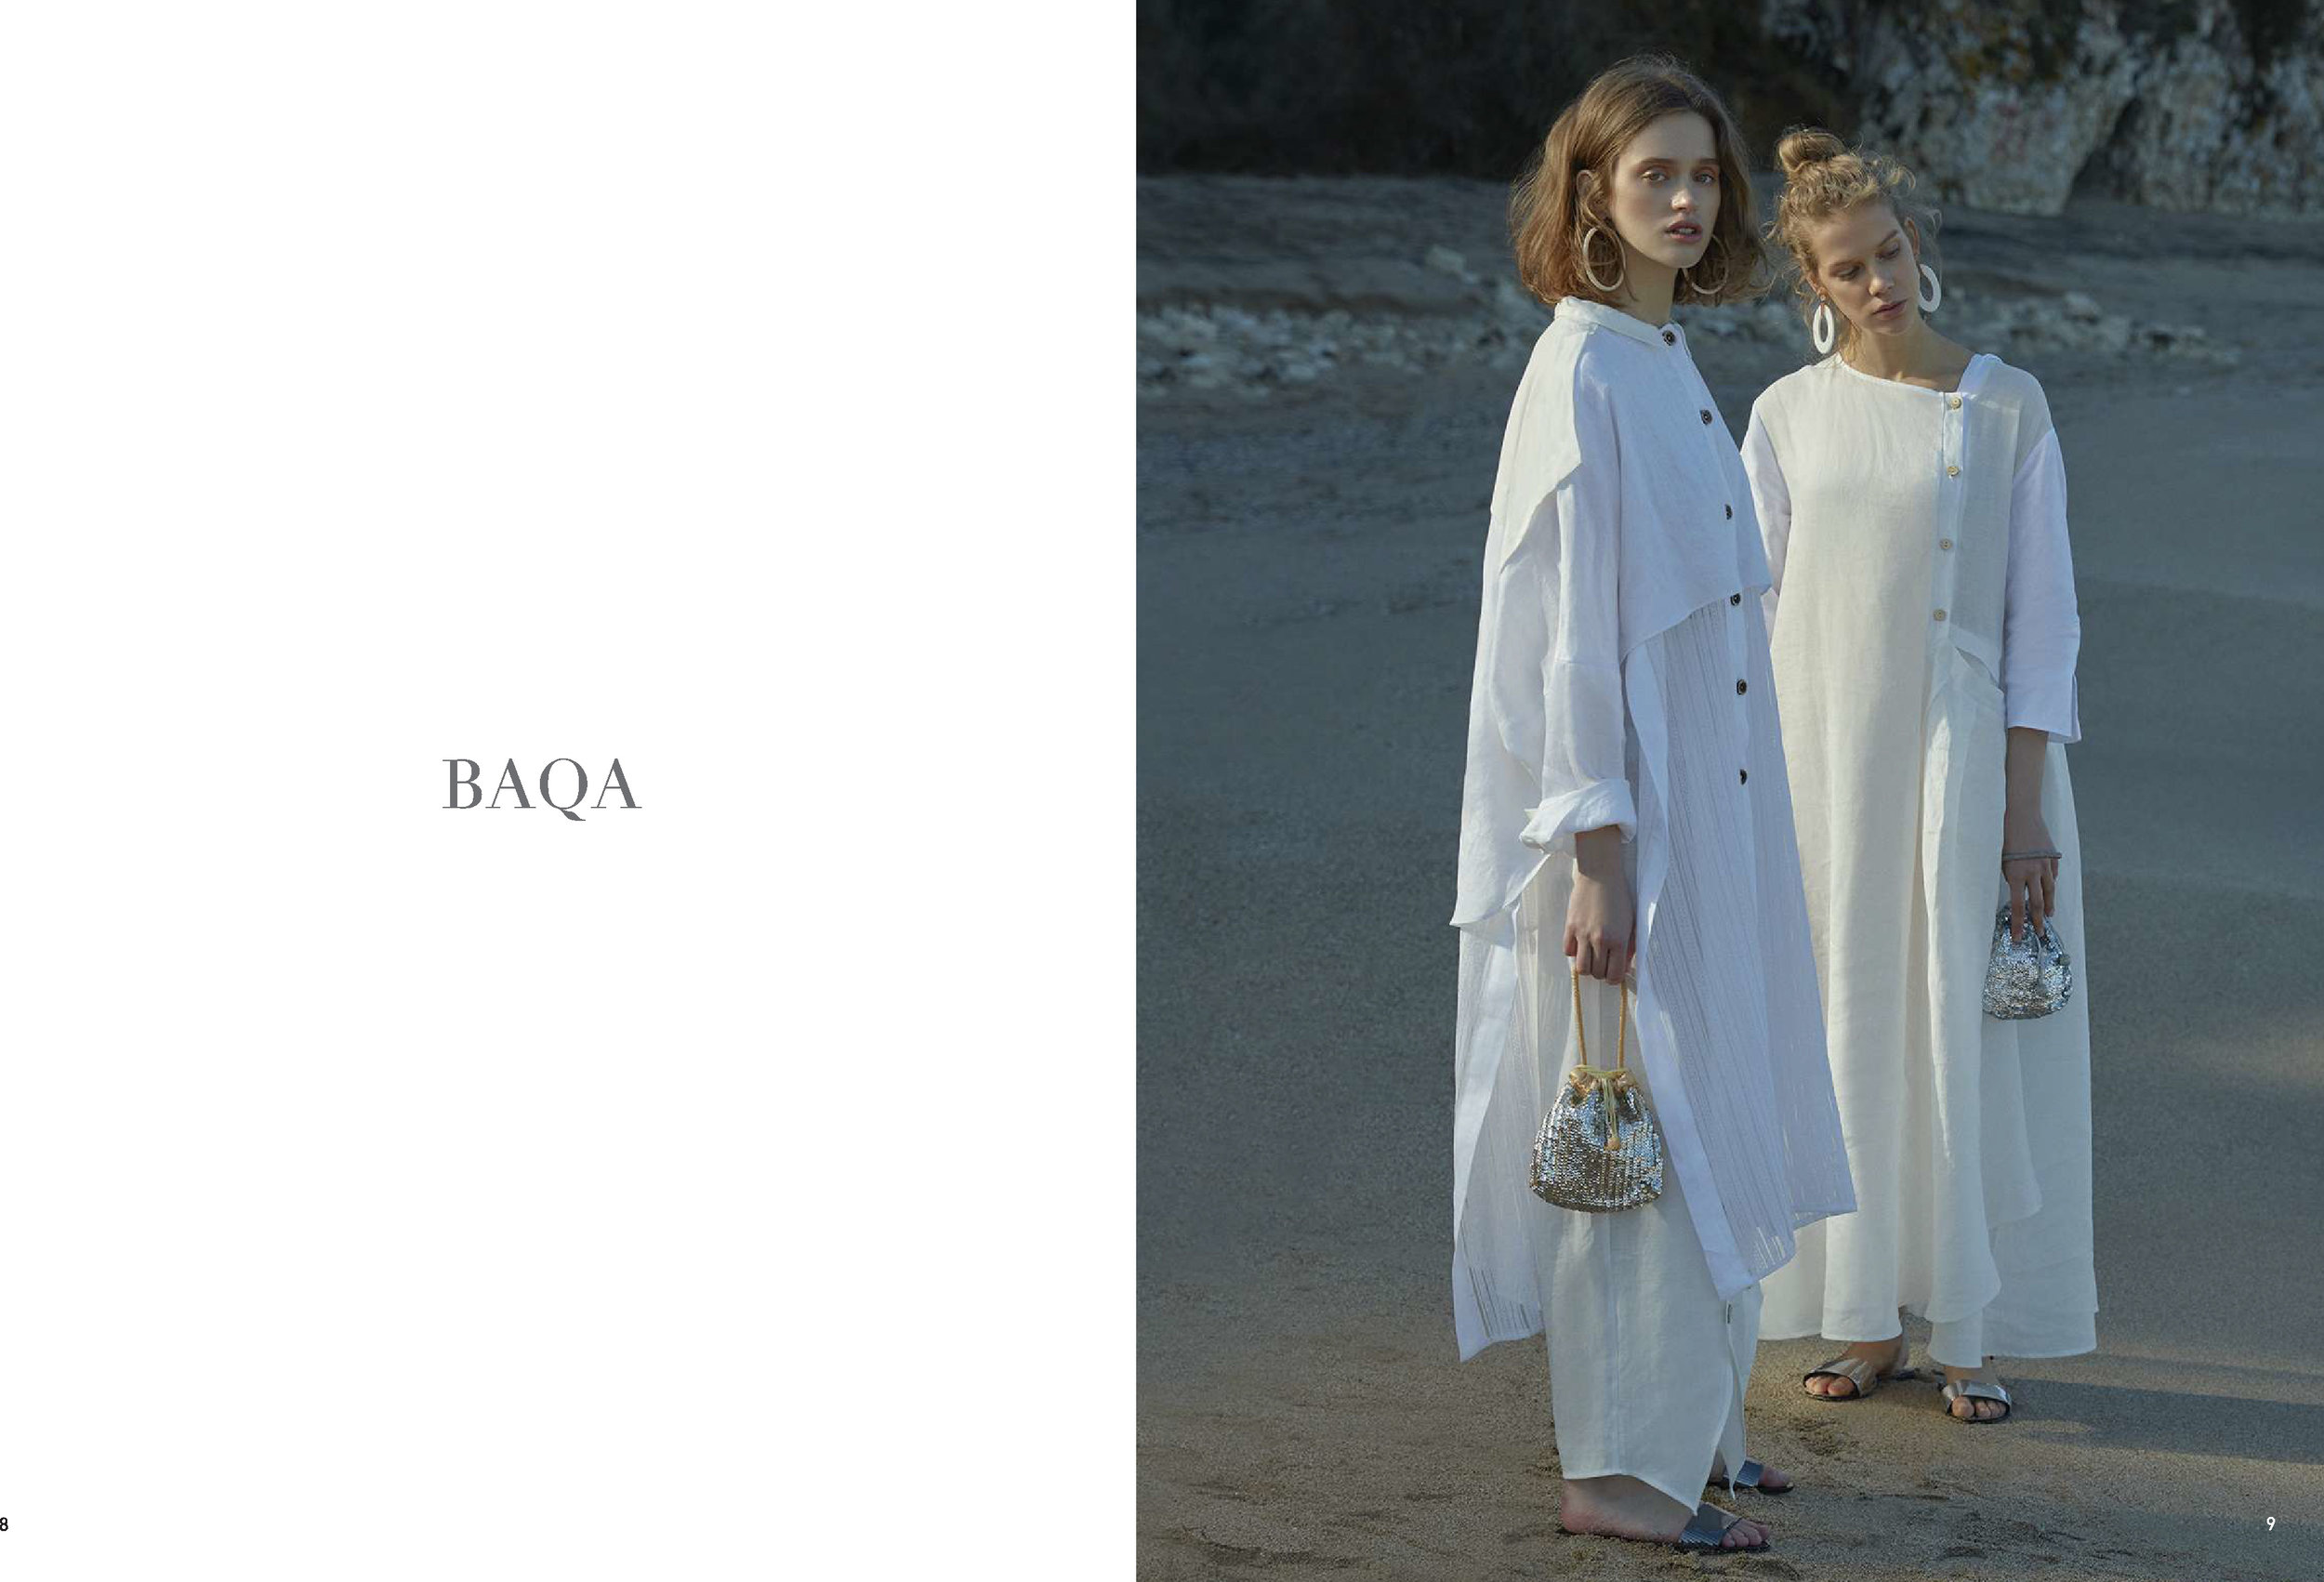 BAQA SS18 Catalogue-6.jpg